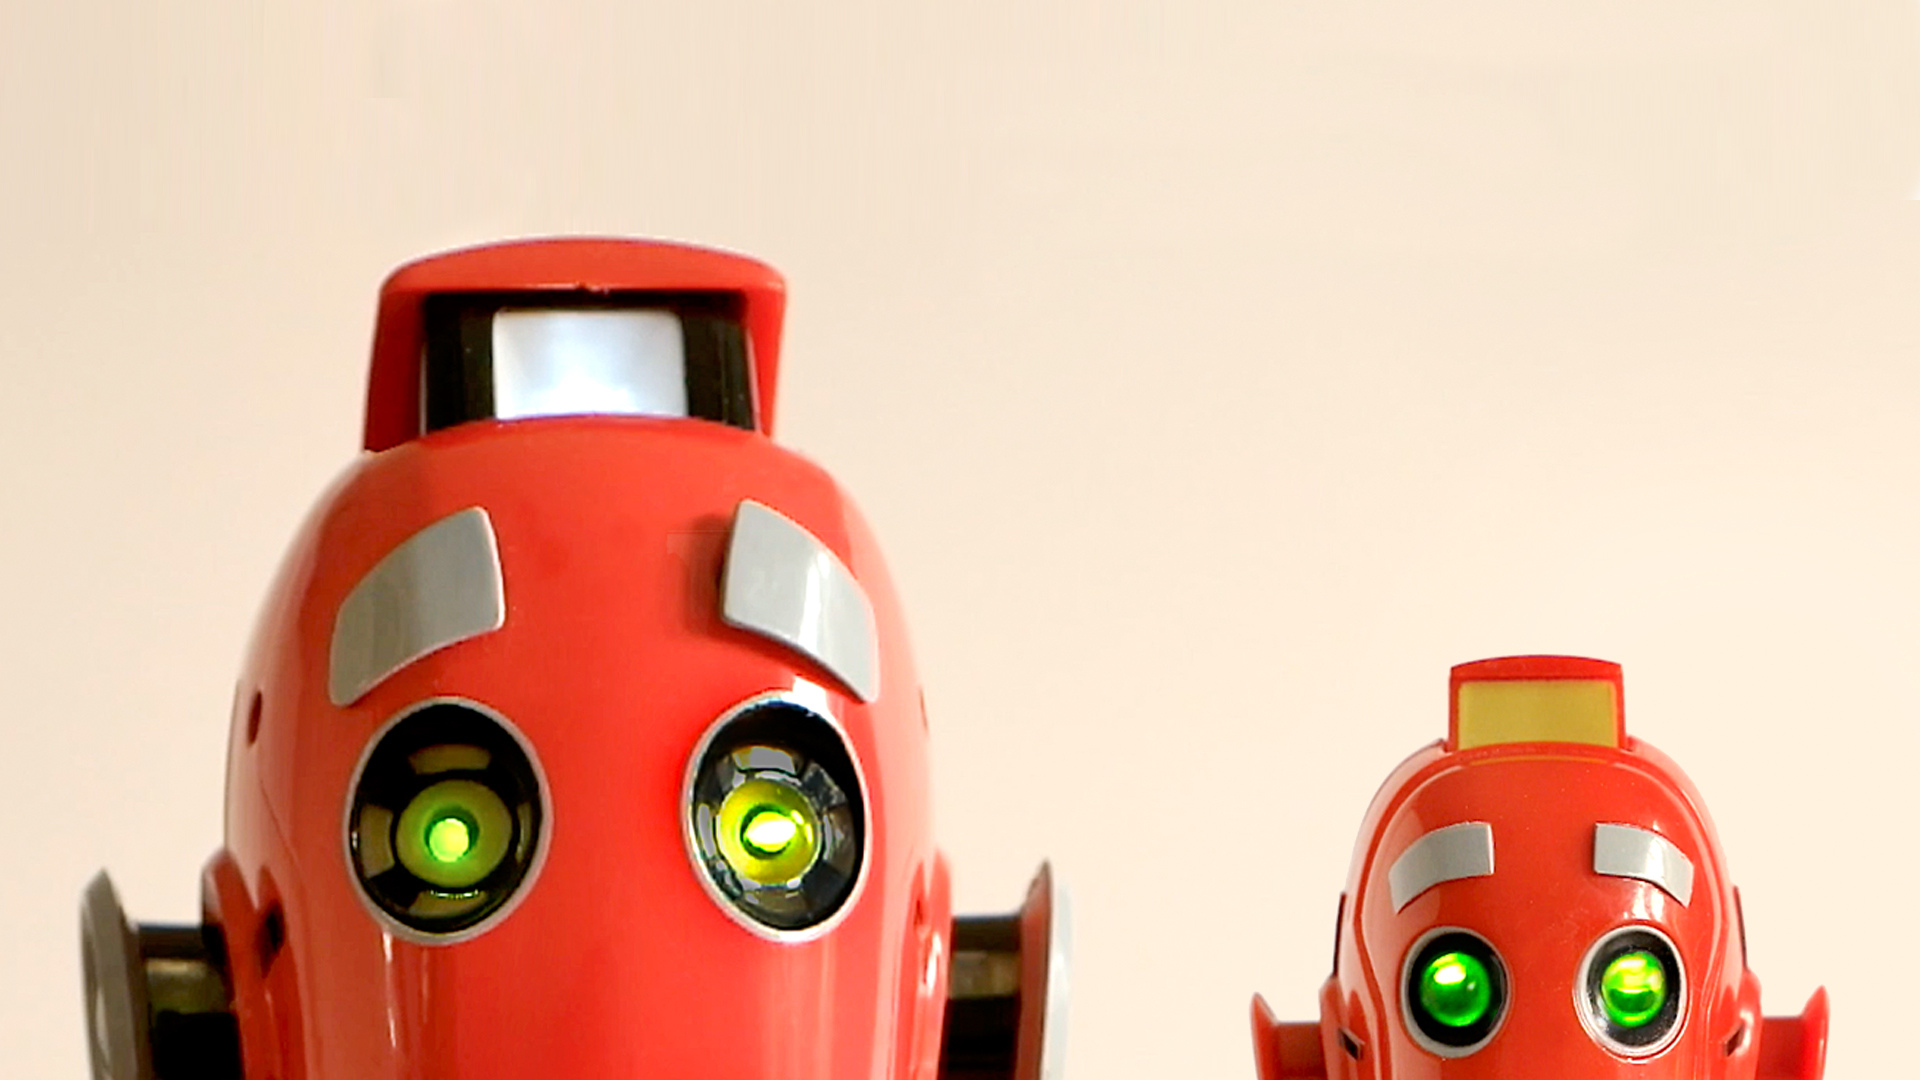 Tri-Bot Robots from WowWee